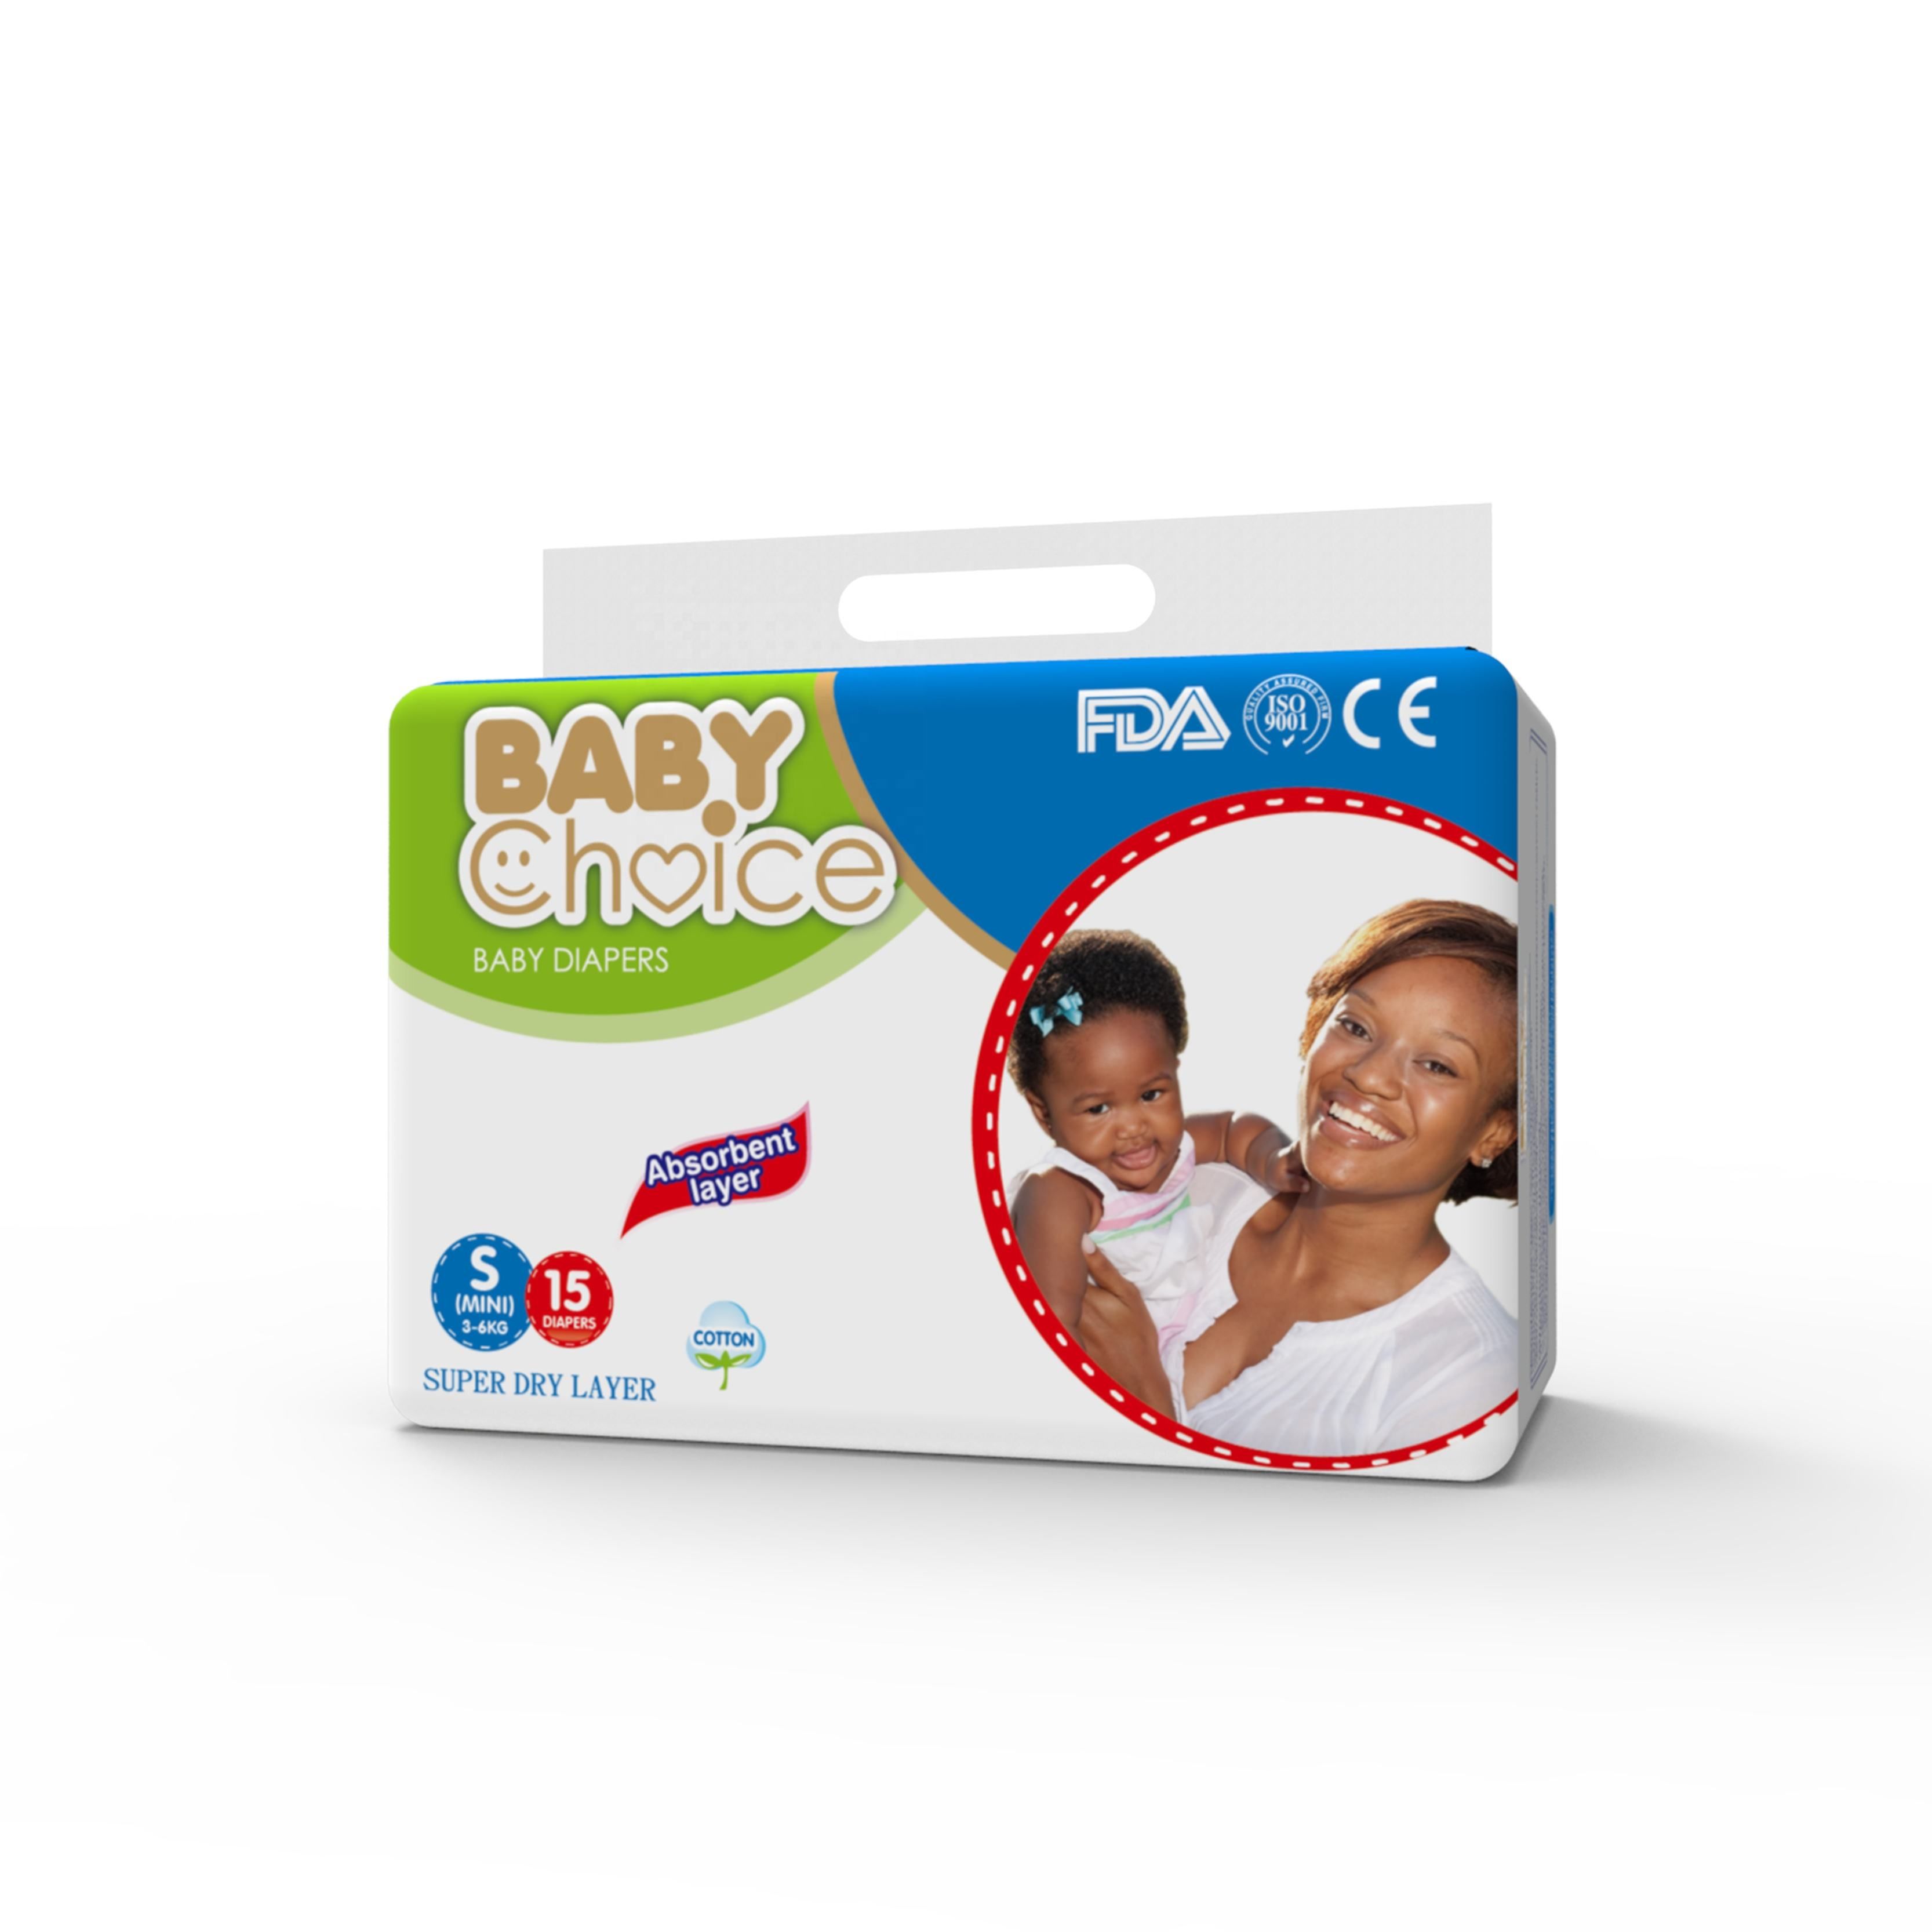 Baby Choice Low price good quality disposable baby diaper